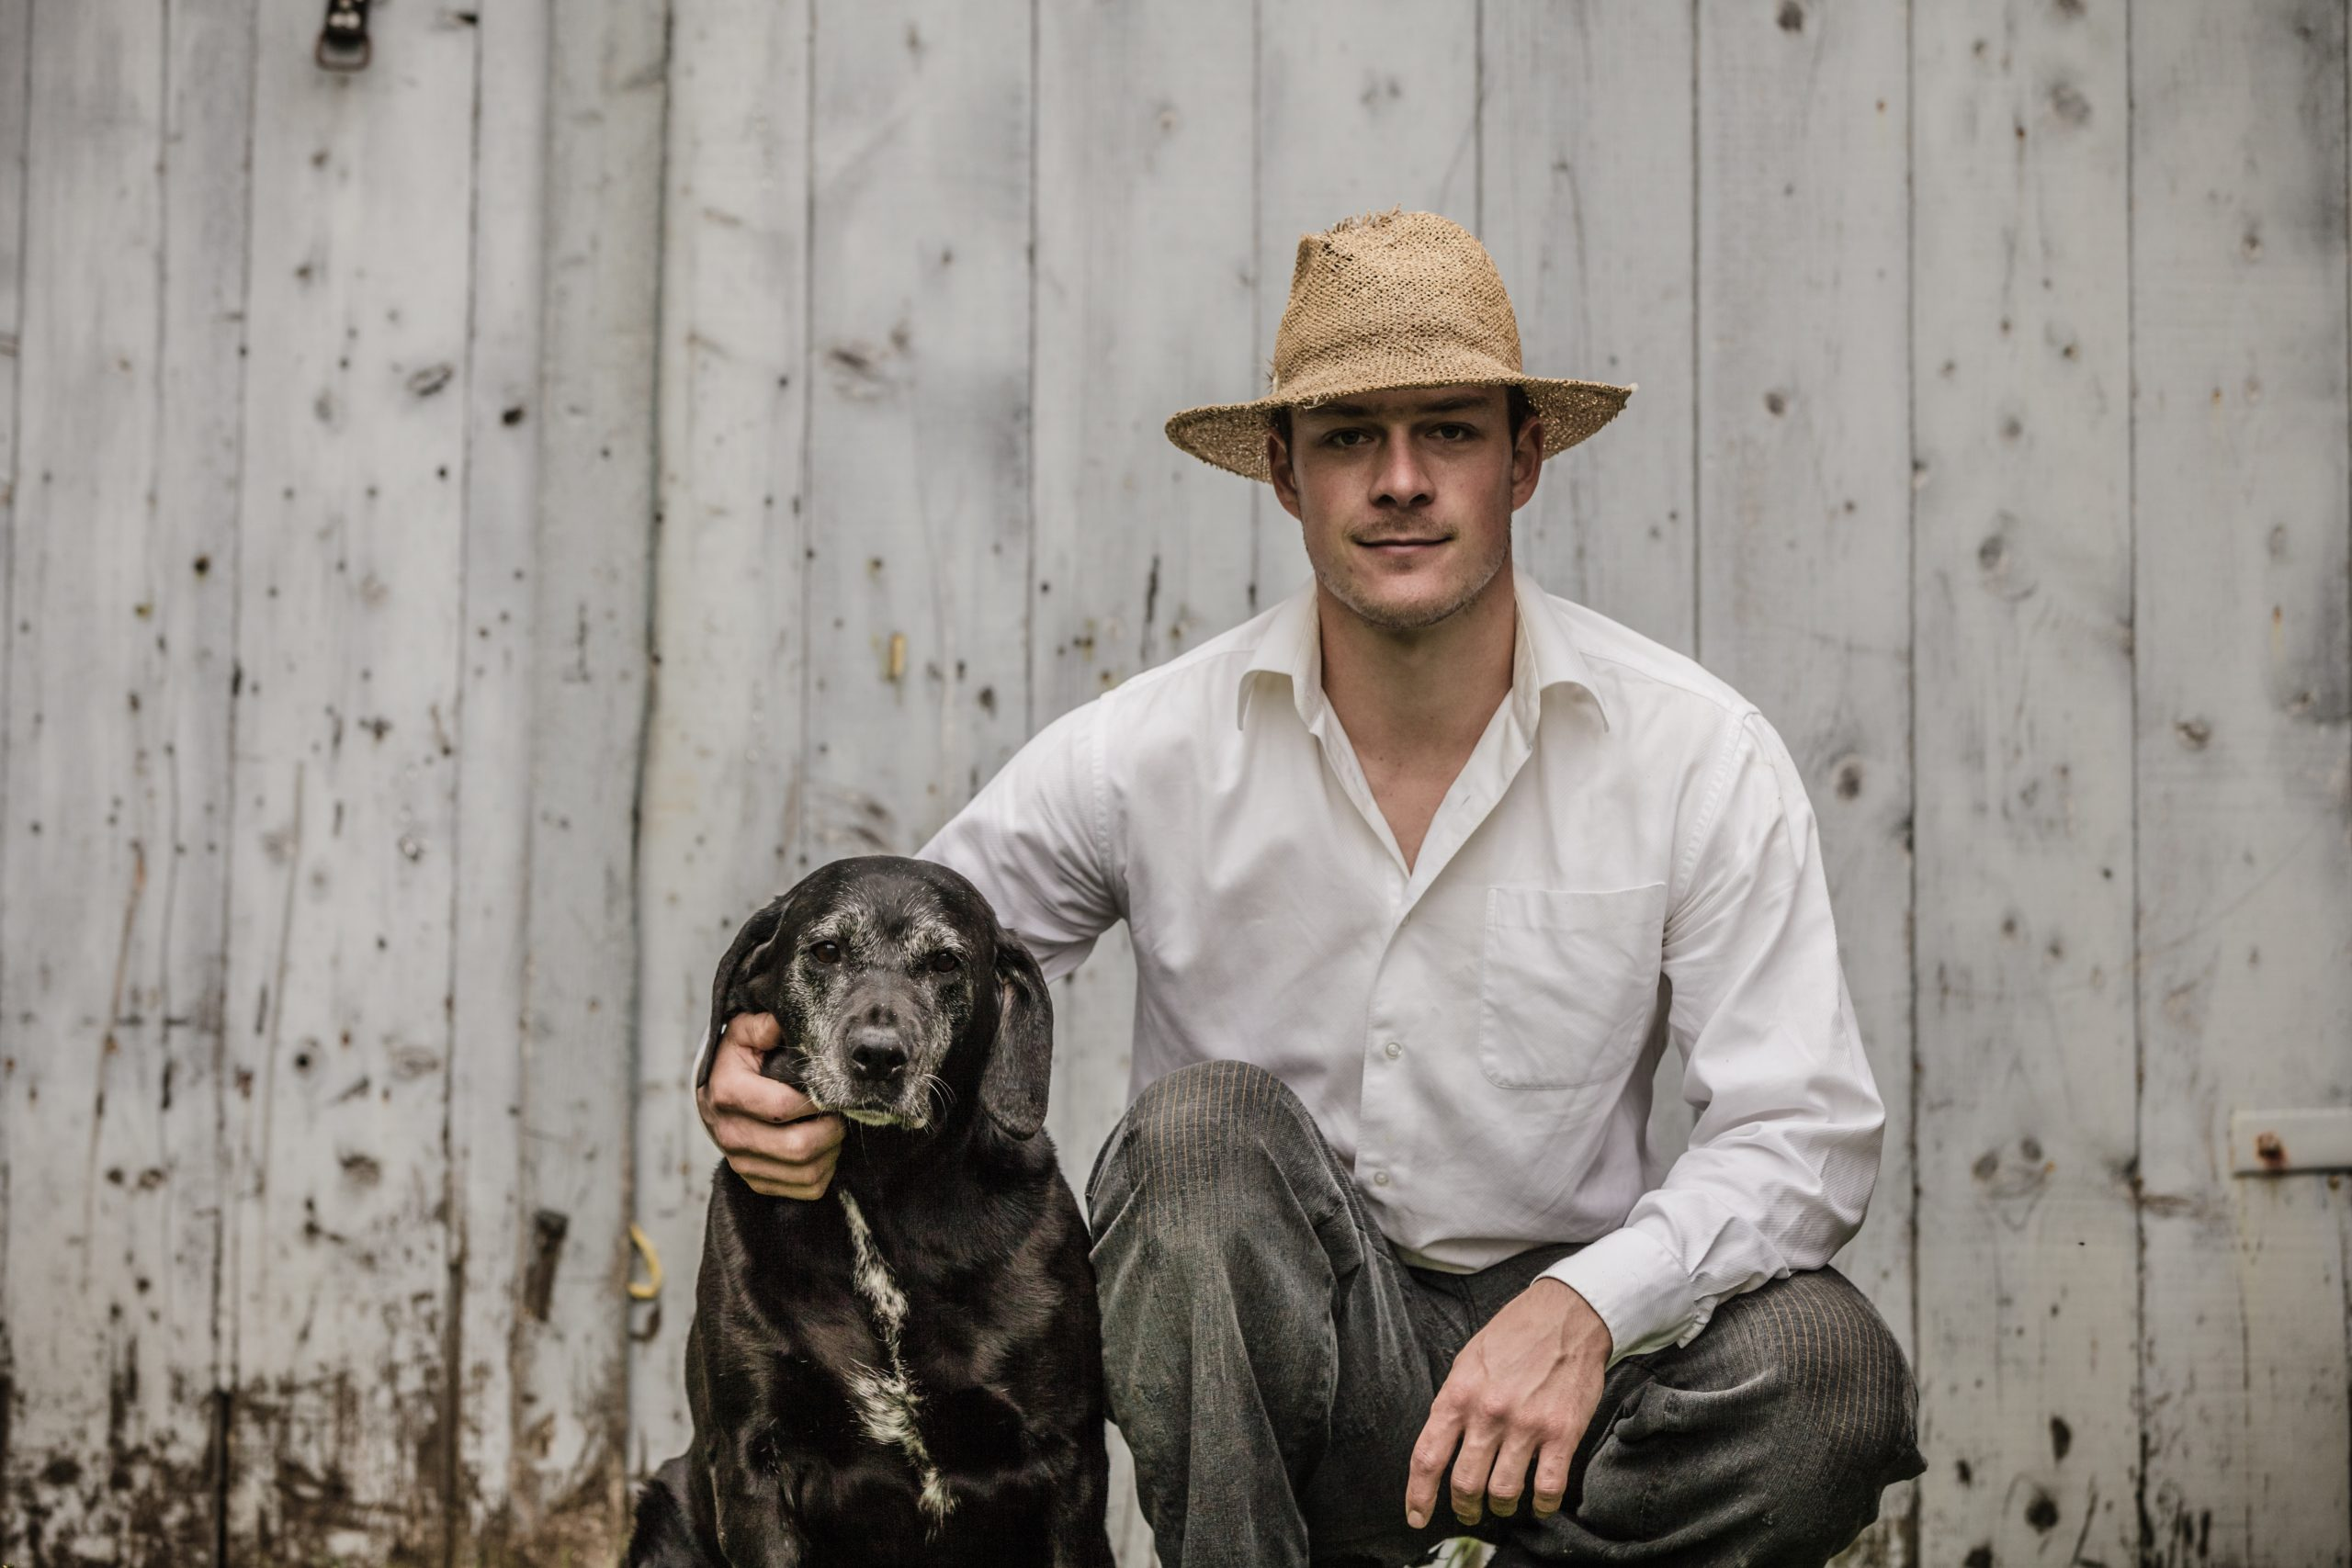 Image of a man wearing a cowboy hat beside a dog